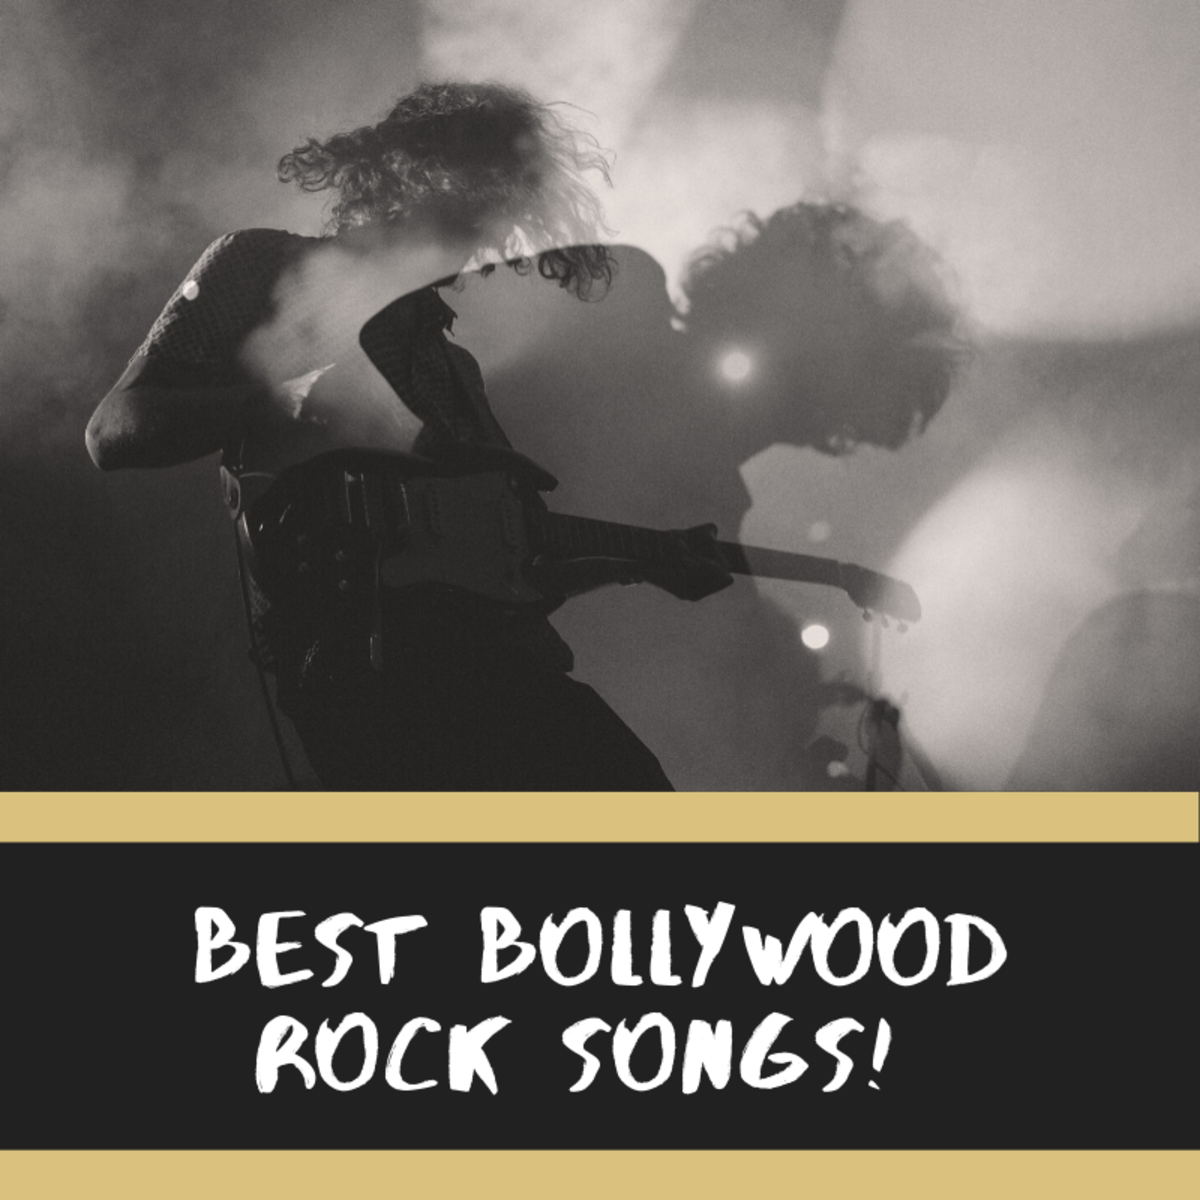 100 Best Bollywood Rock Songs